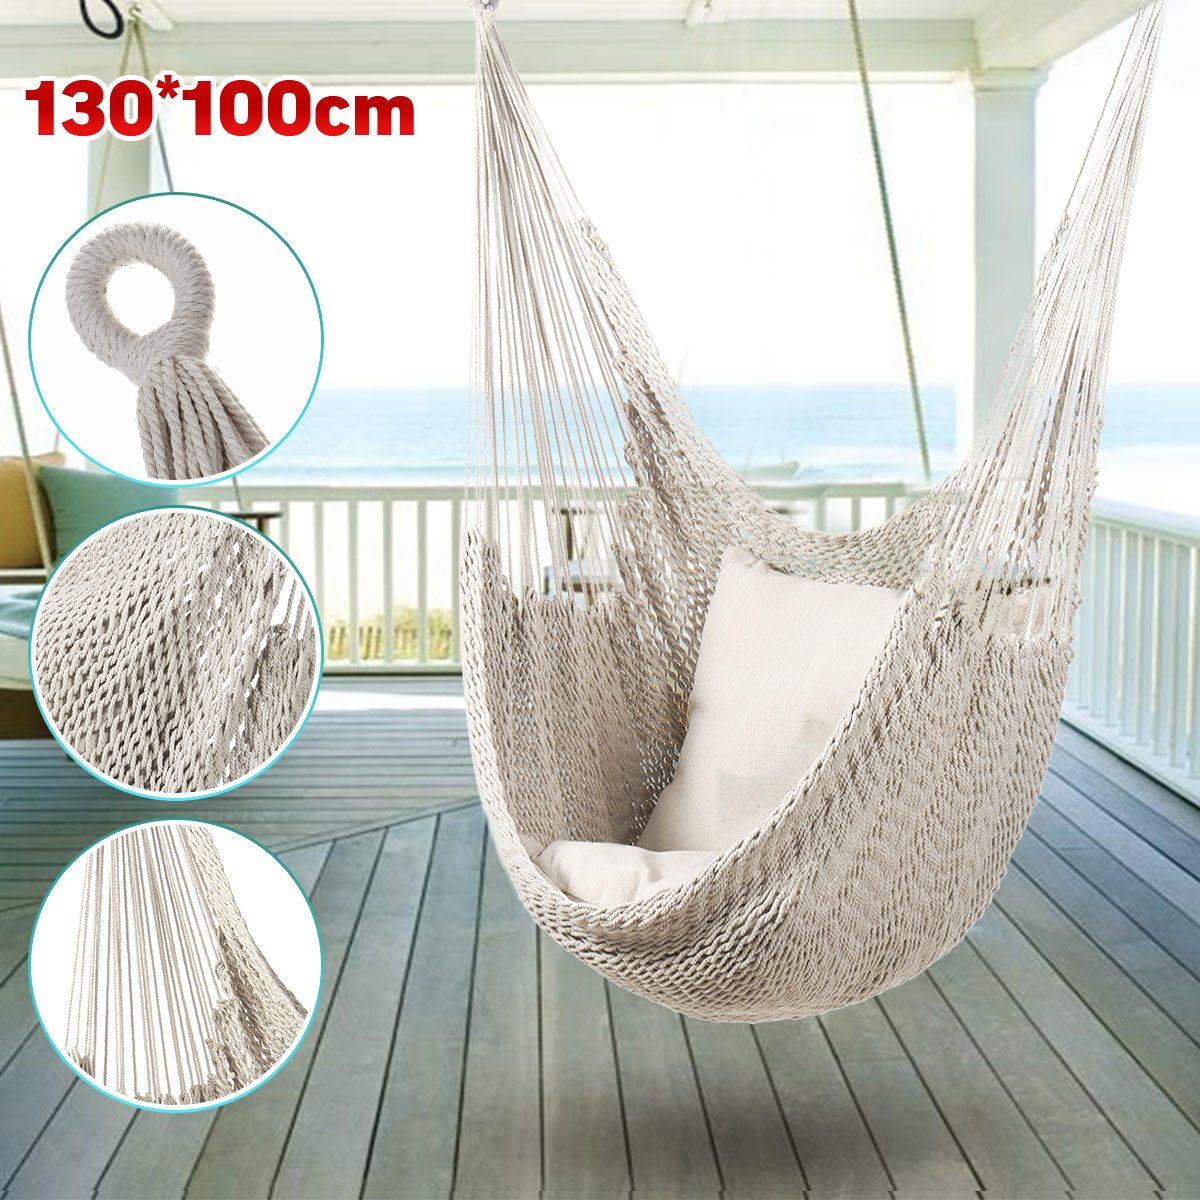 Hammock Chair Outdoor Indoor Garden Bedroom Furniture Outdoor Hanging Chair For Child Adult Safety Camping Swing Chair| | - AliExpress